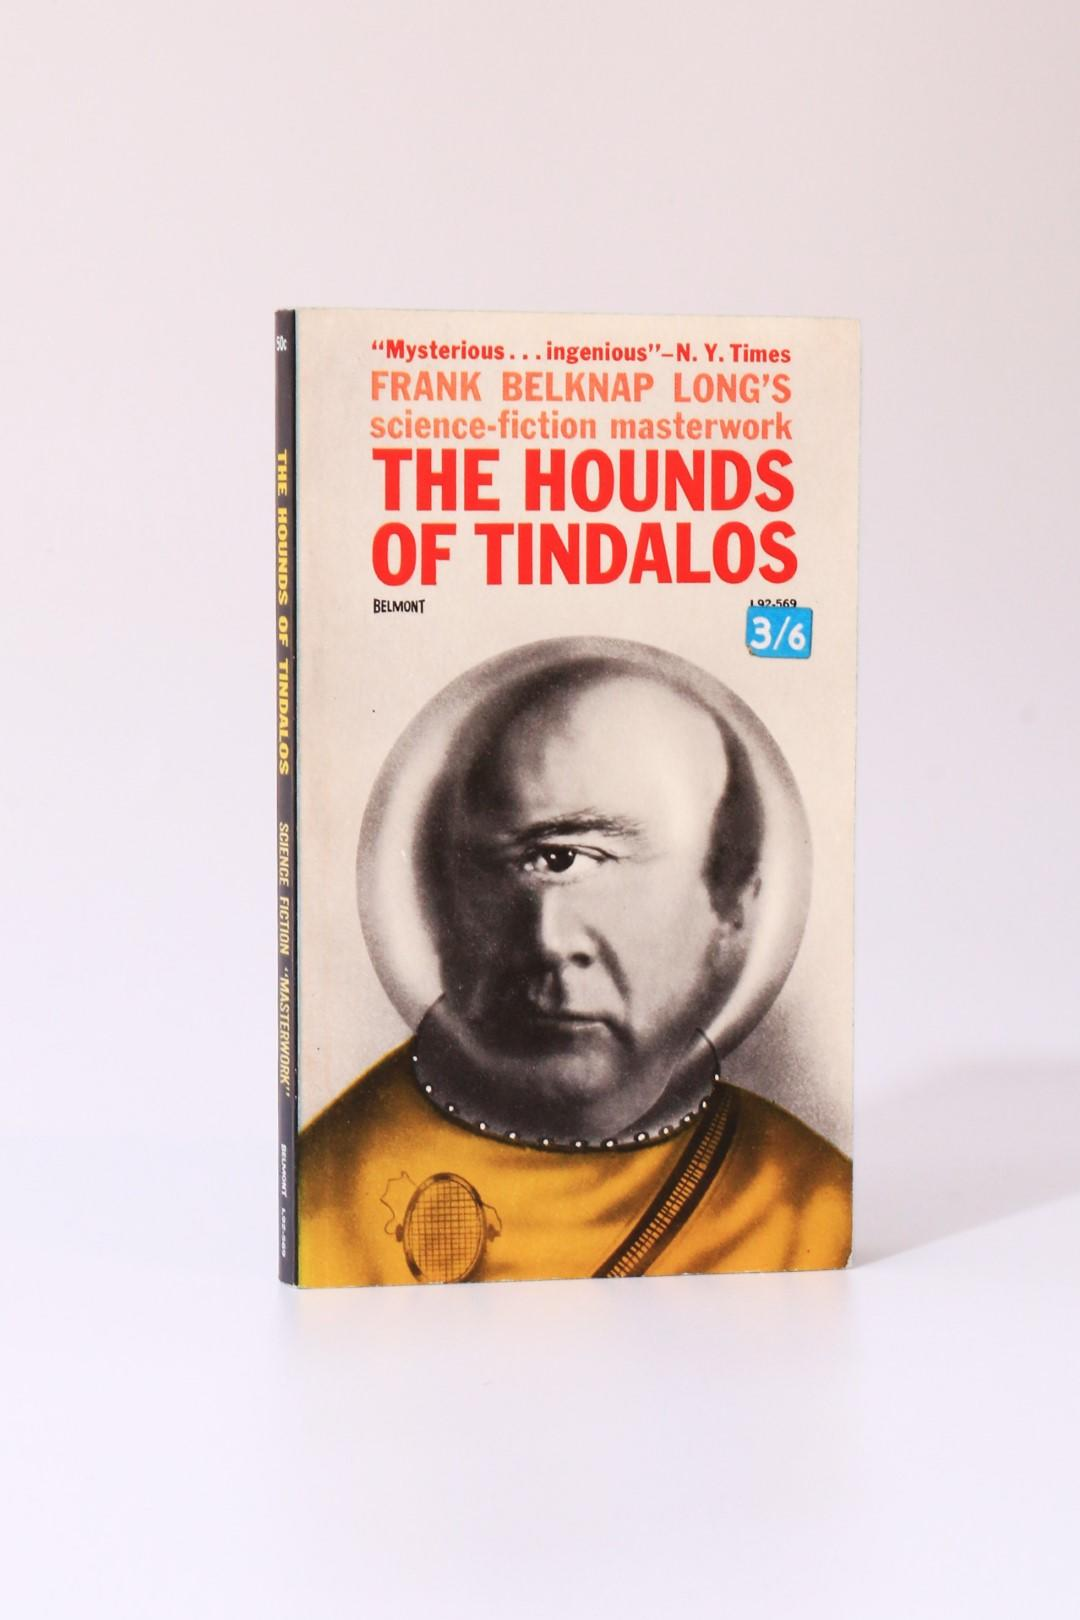 Frank Belknap Long - The Hounds of Tindalos - Belmont, 1963, First Edition.